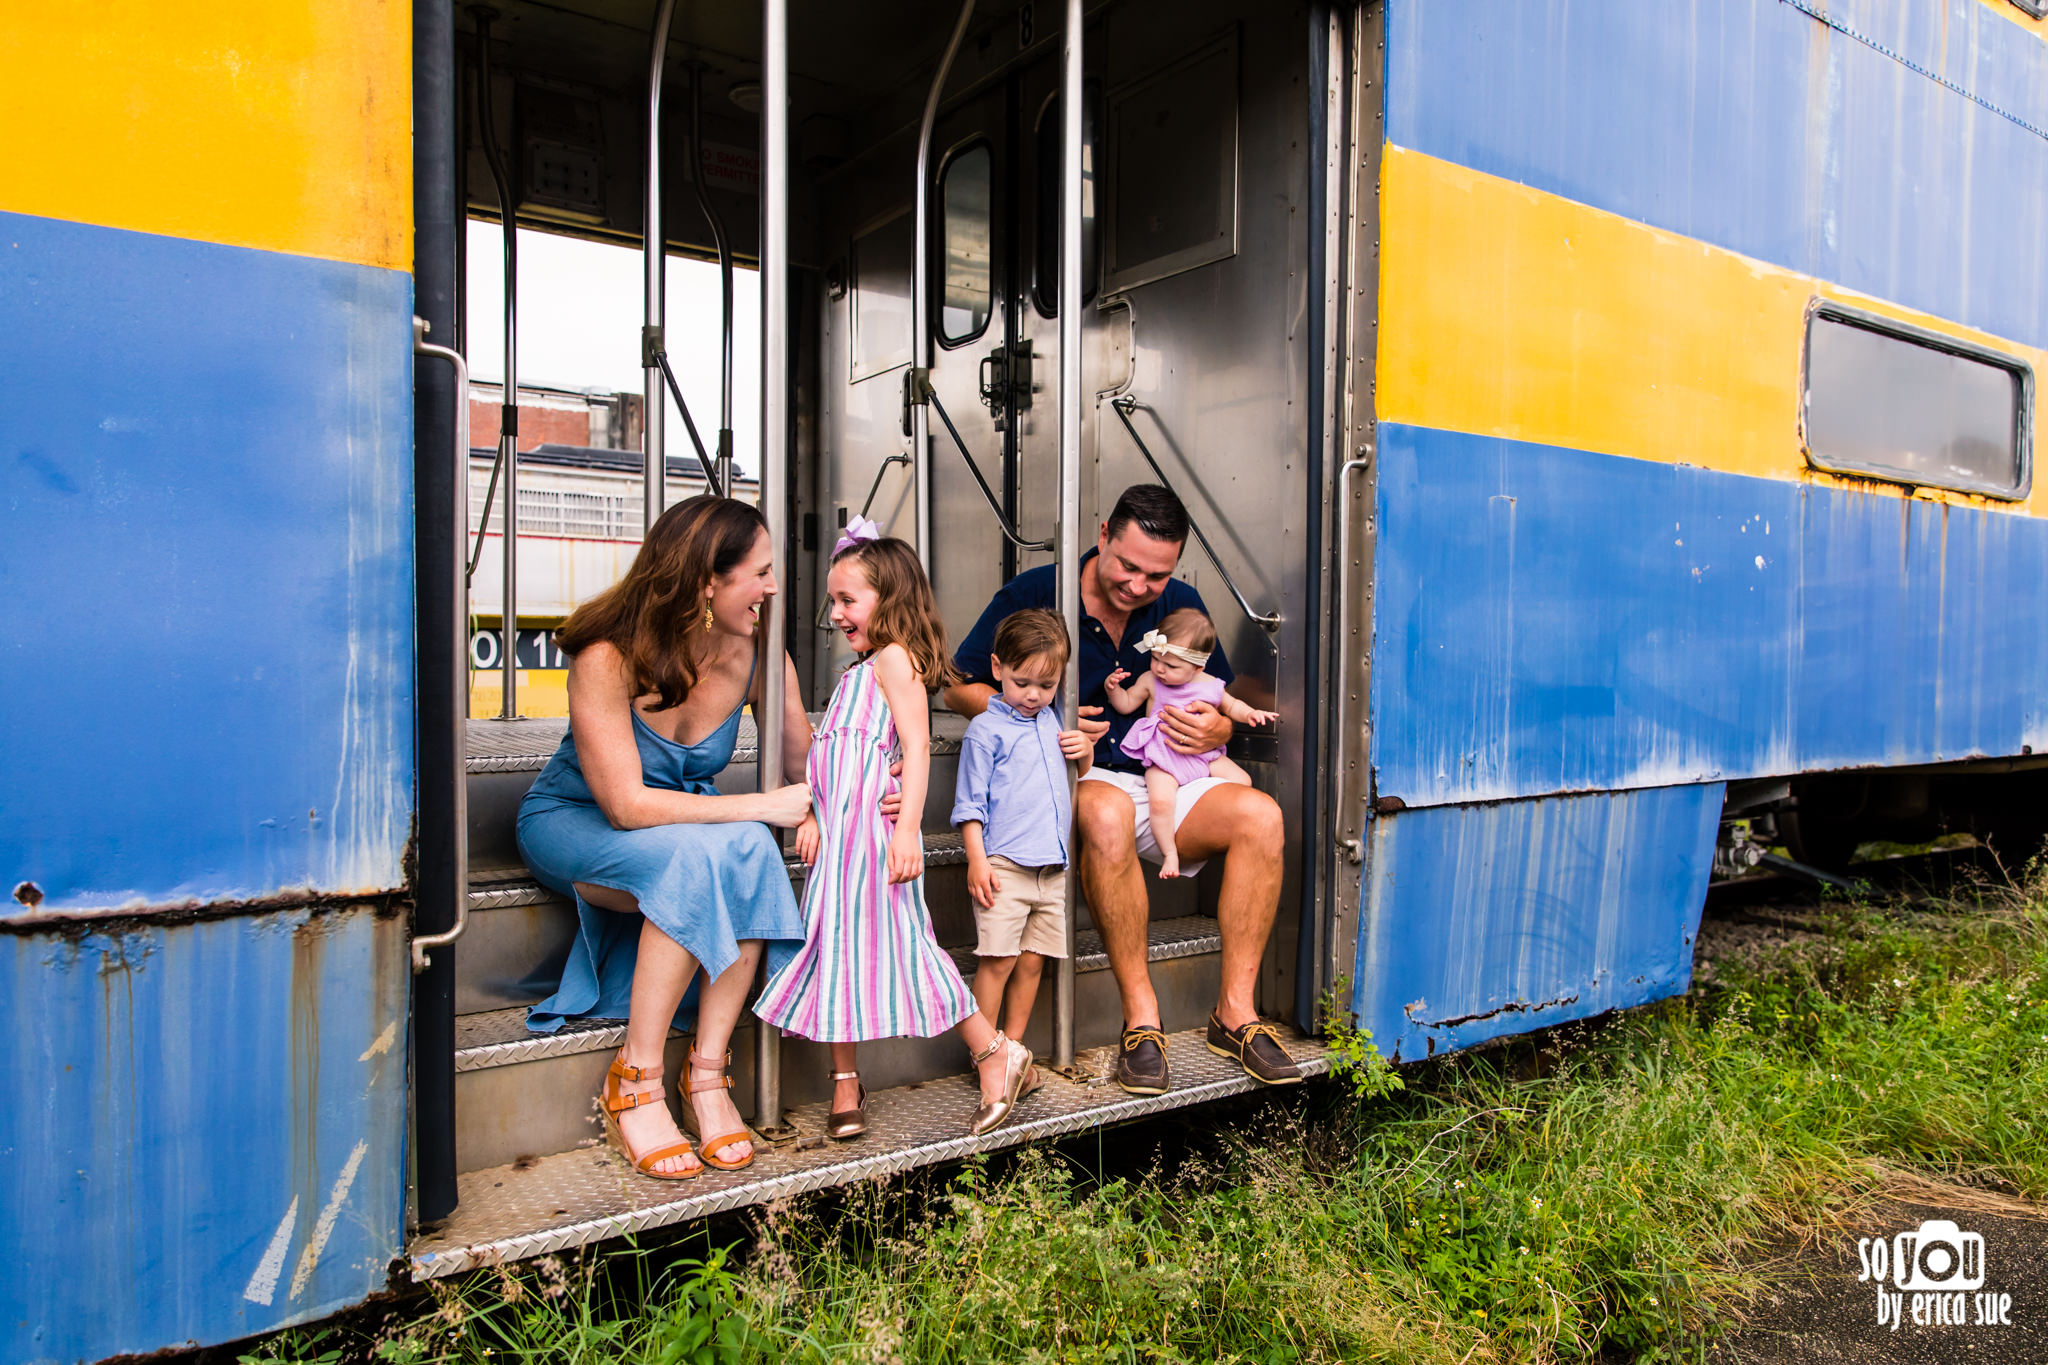 so-you-by-erica-sue-gold-coast-railroad-museum-miami-family-photo-shoot-session-7391.JPG